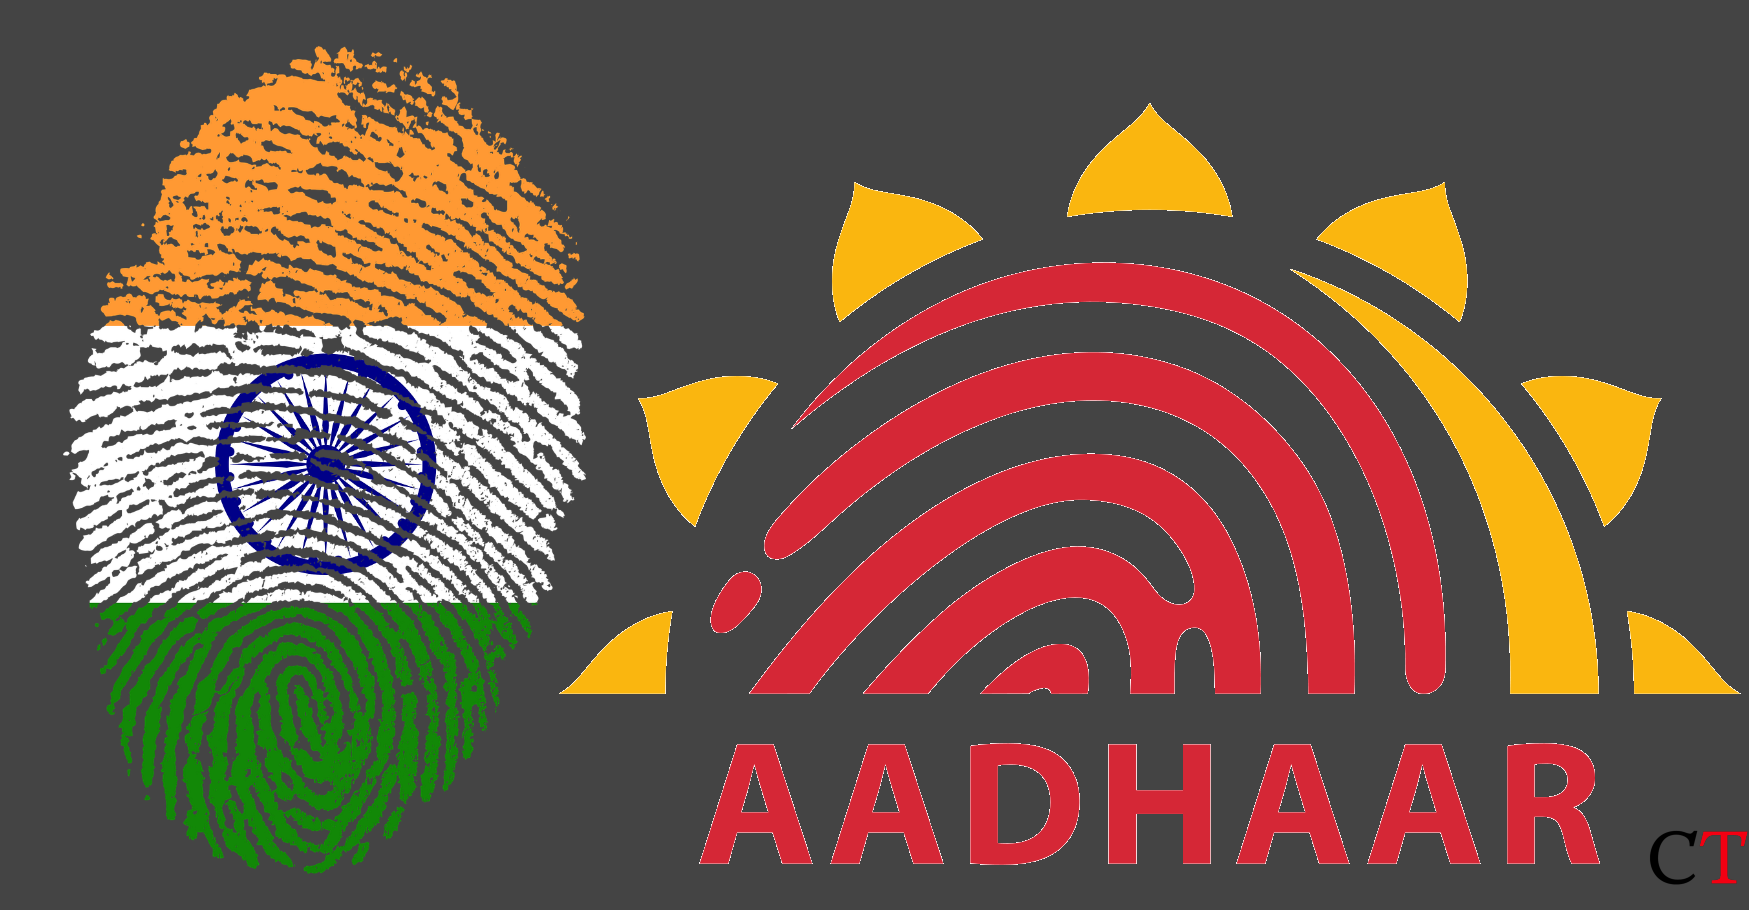 UIDAI refutes HuffPost's claims, says report lacks substance & is baseless